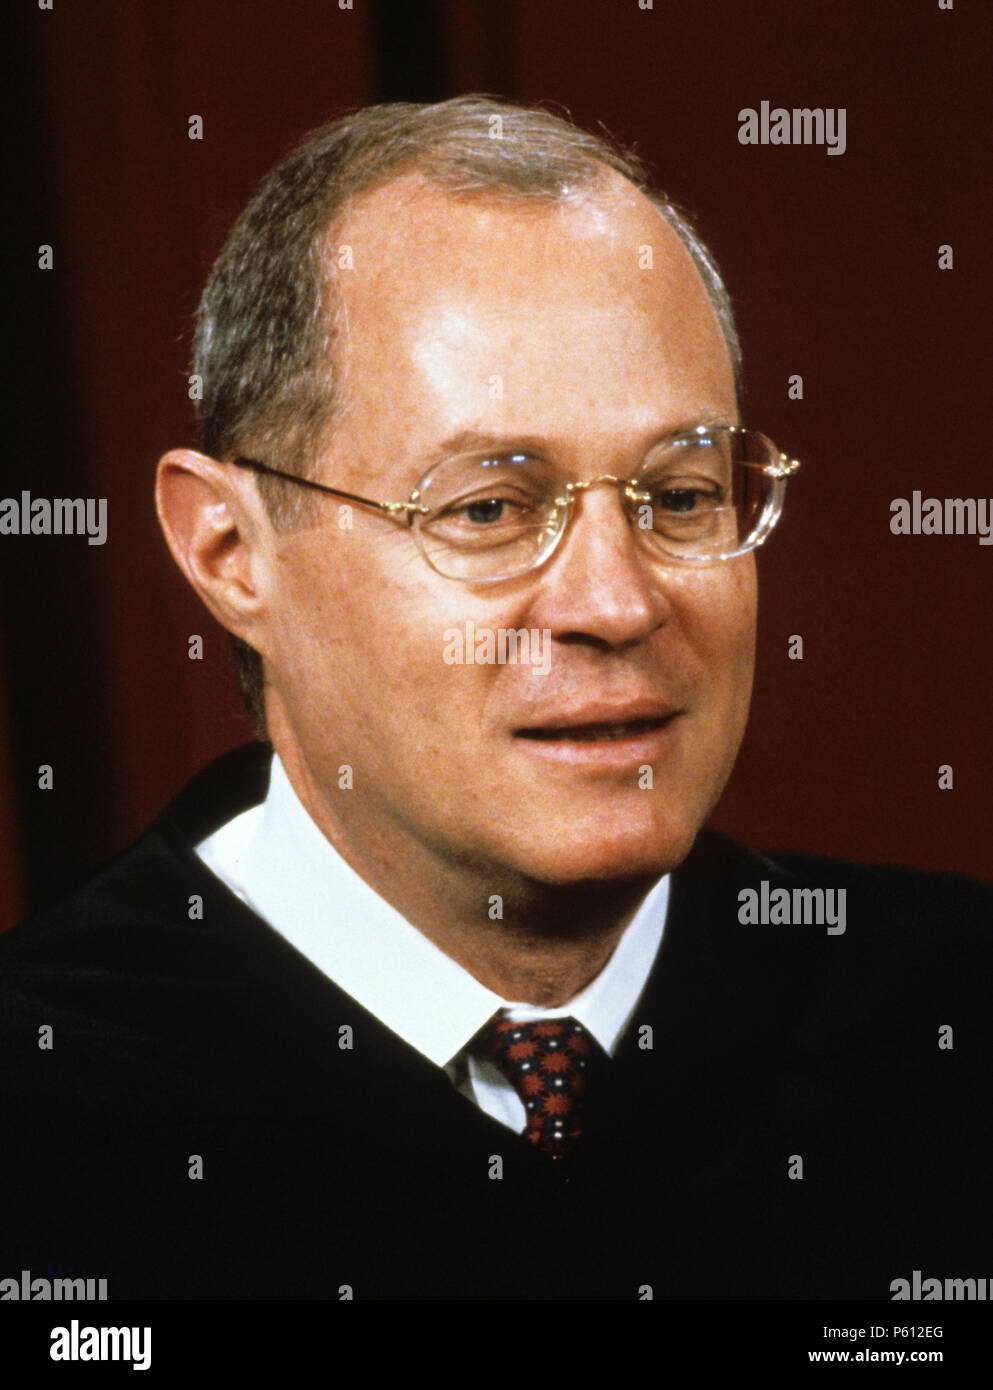 Associate Justice of the United States Supreme Court Anthony M. Kennedy poses for a photo during a photo-op at the U.S. Supreme Court in Washington, DC on Tuesday, September 11, 1990. Kennedy was appointed by U.S. President Ronald Reagan in 1998.Credit: Robert Trippett/Pool via CNP/ MediaPunch Stock Photo